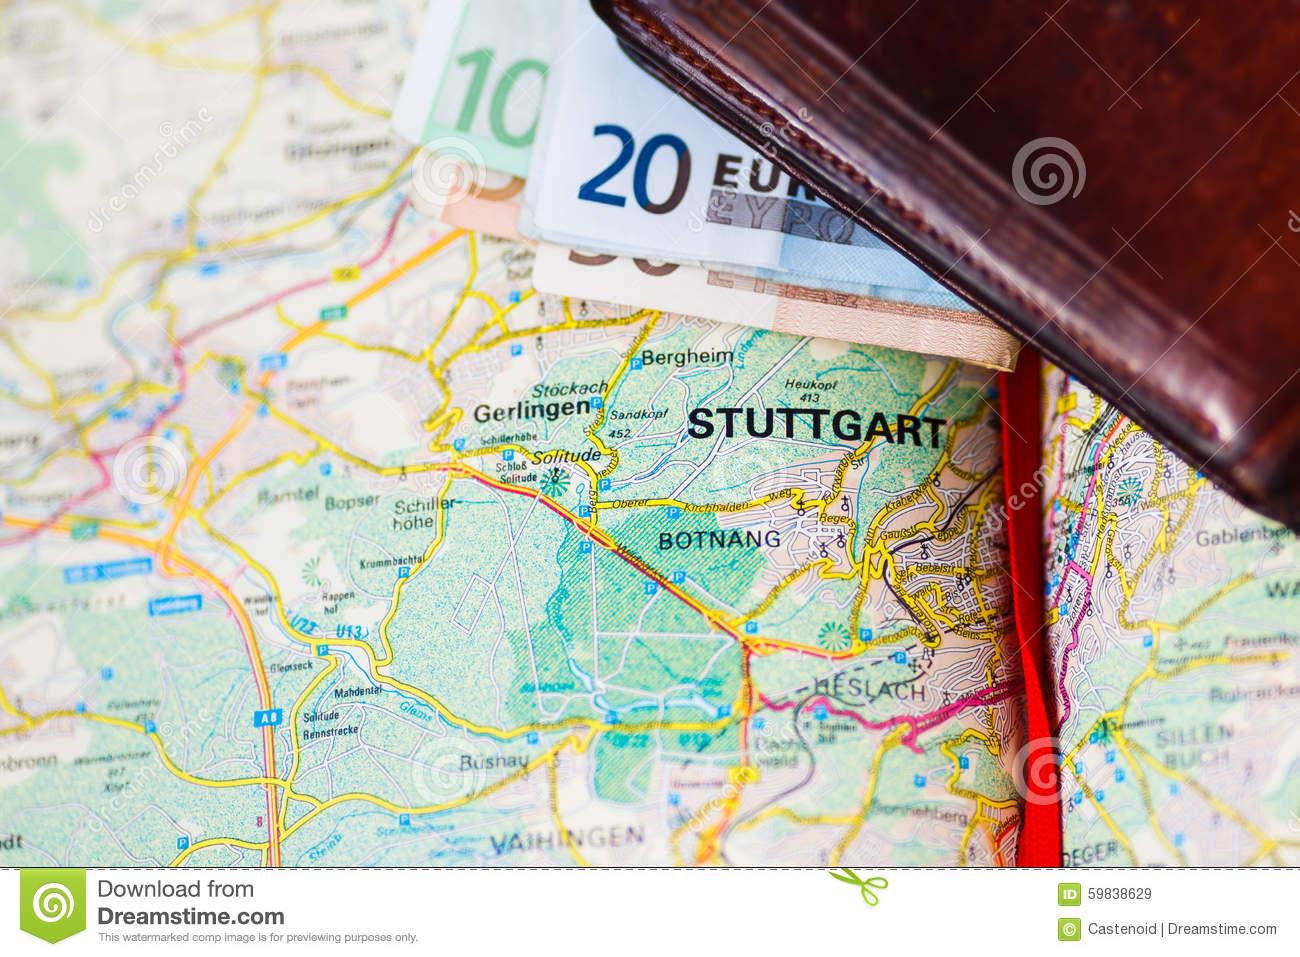 Geographical Map Of Germany.Euro Banknotes Inside Wallet On A Geographical Map Of Stuttgart